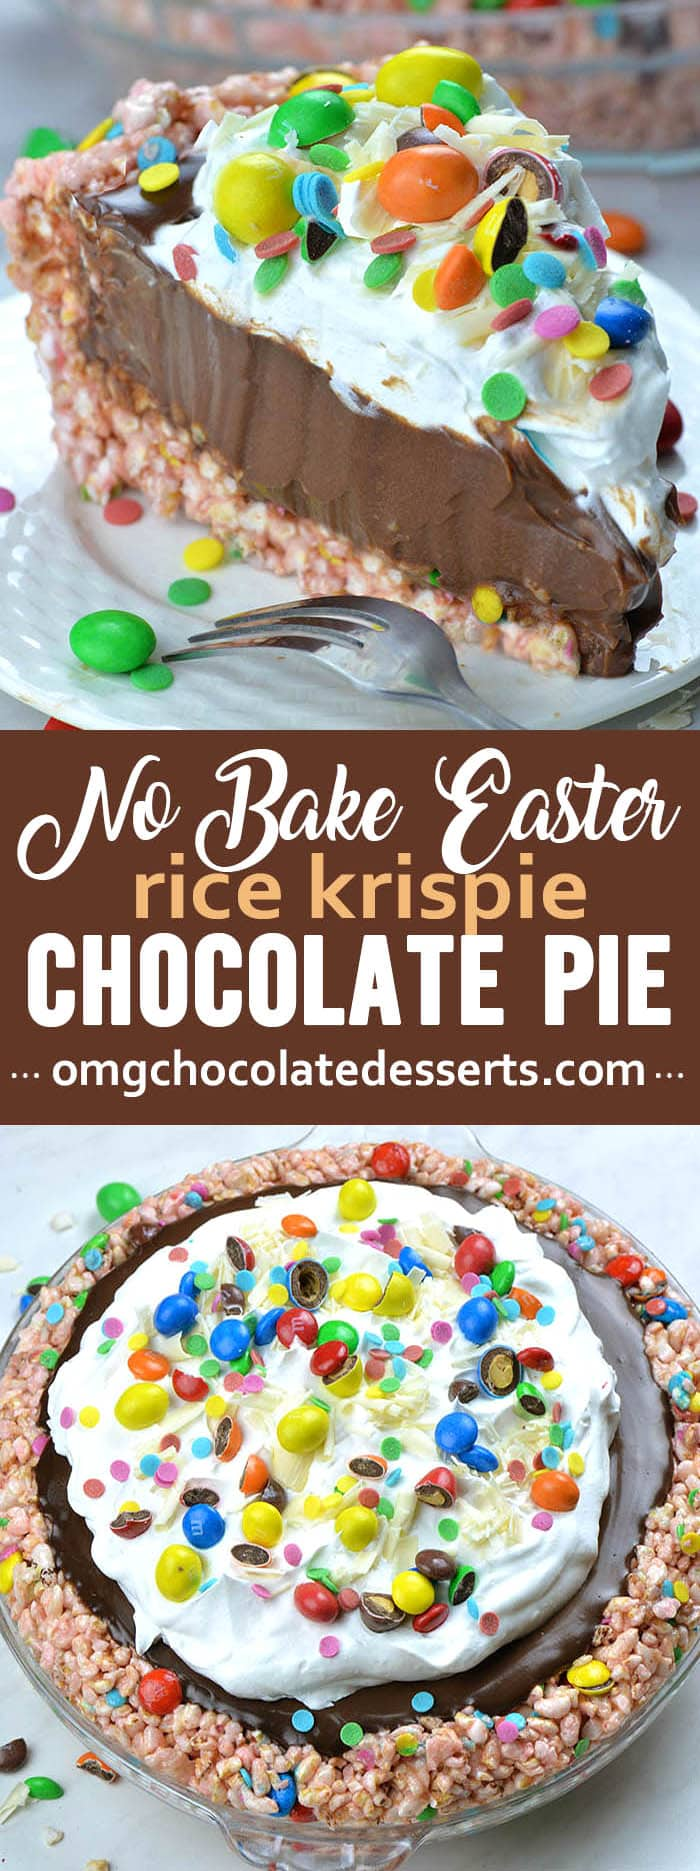 No Bake Easter Chocolate Pie Omg Chocolate Desserts